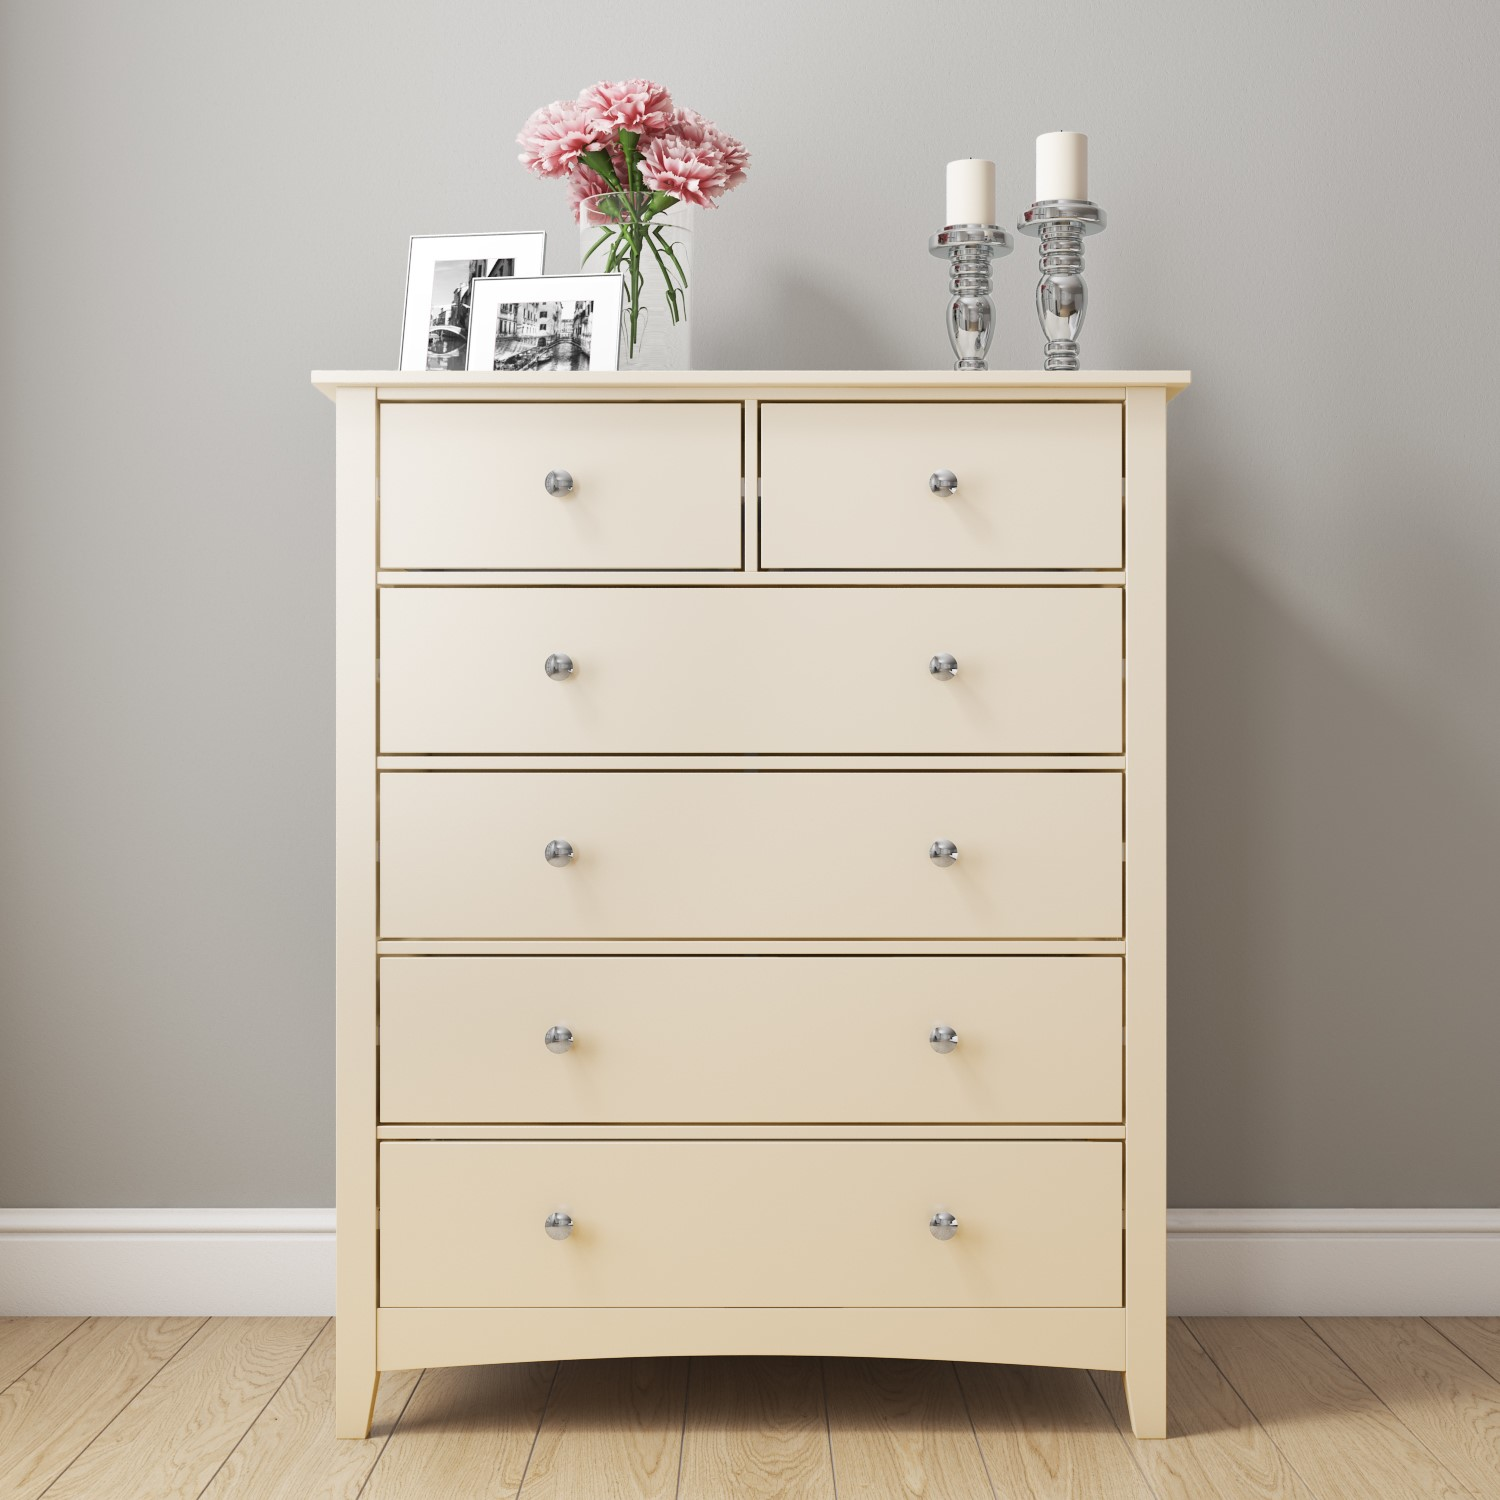 Cream 2 4 Chest Of Drawers Solid Wood Tall Storage Bedroom